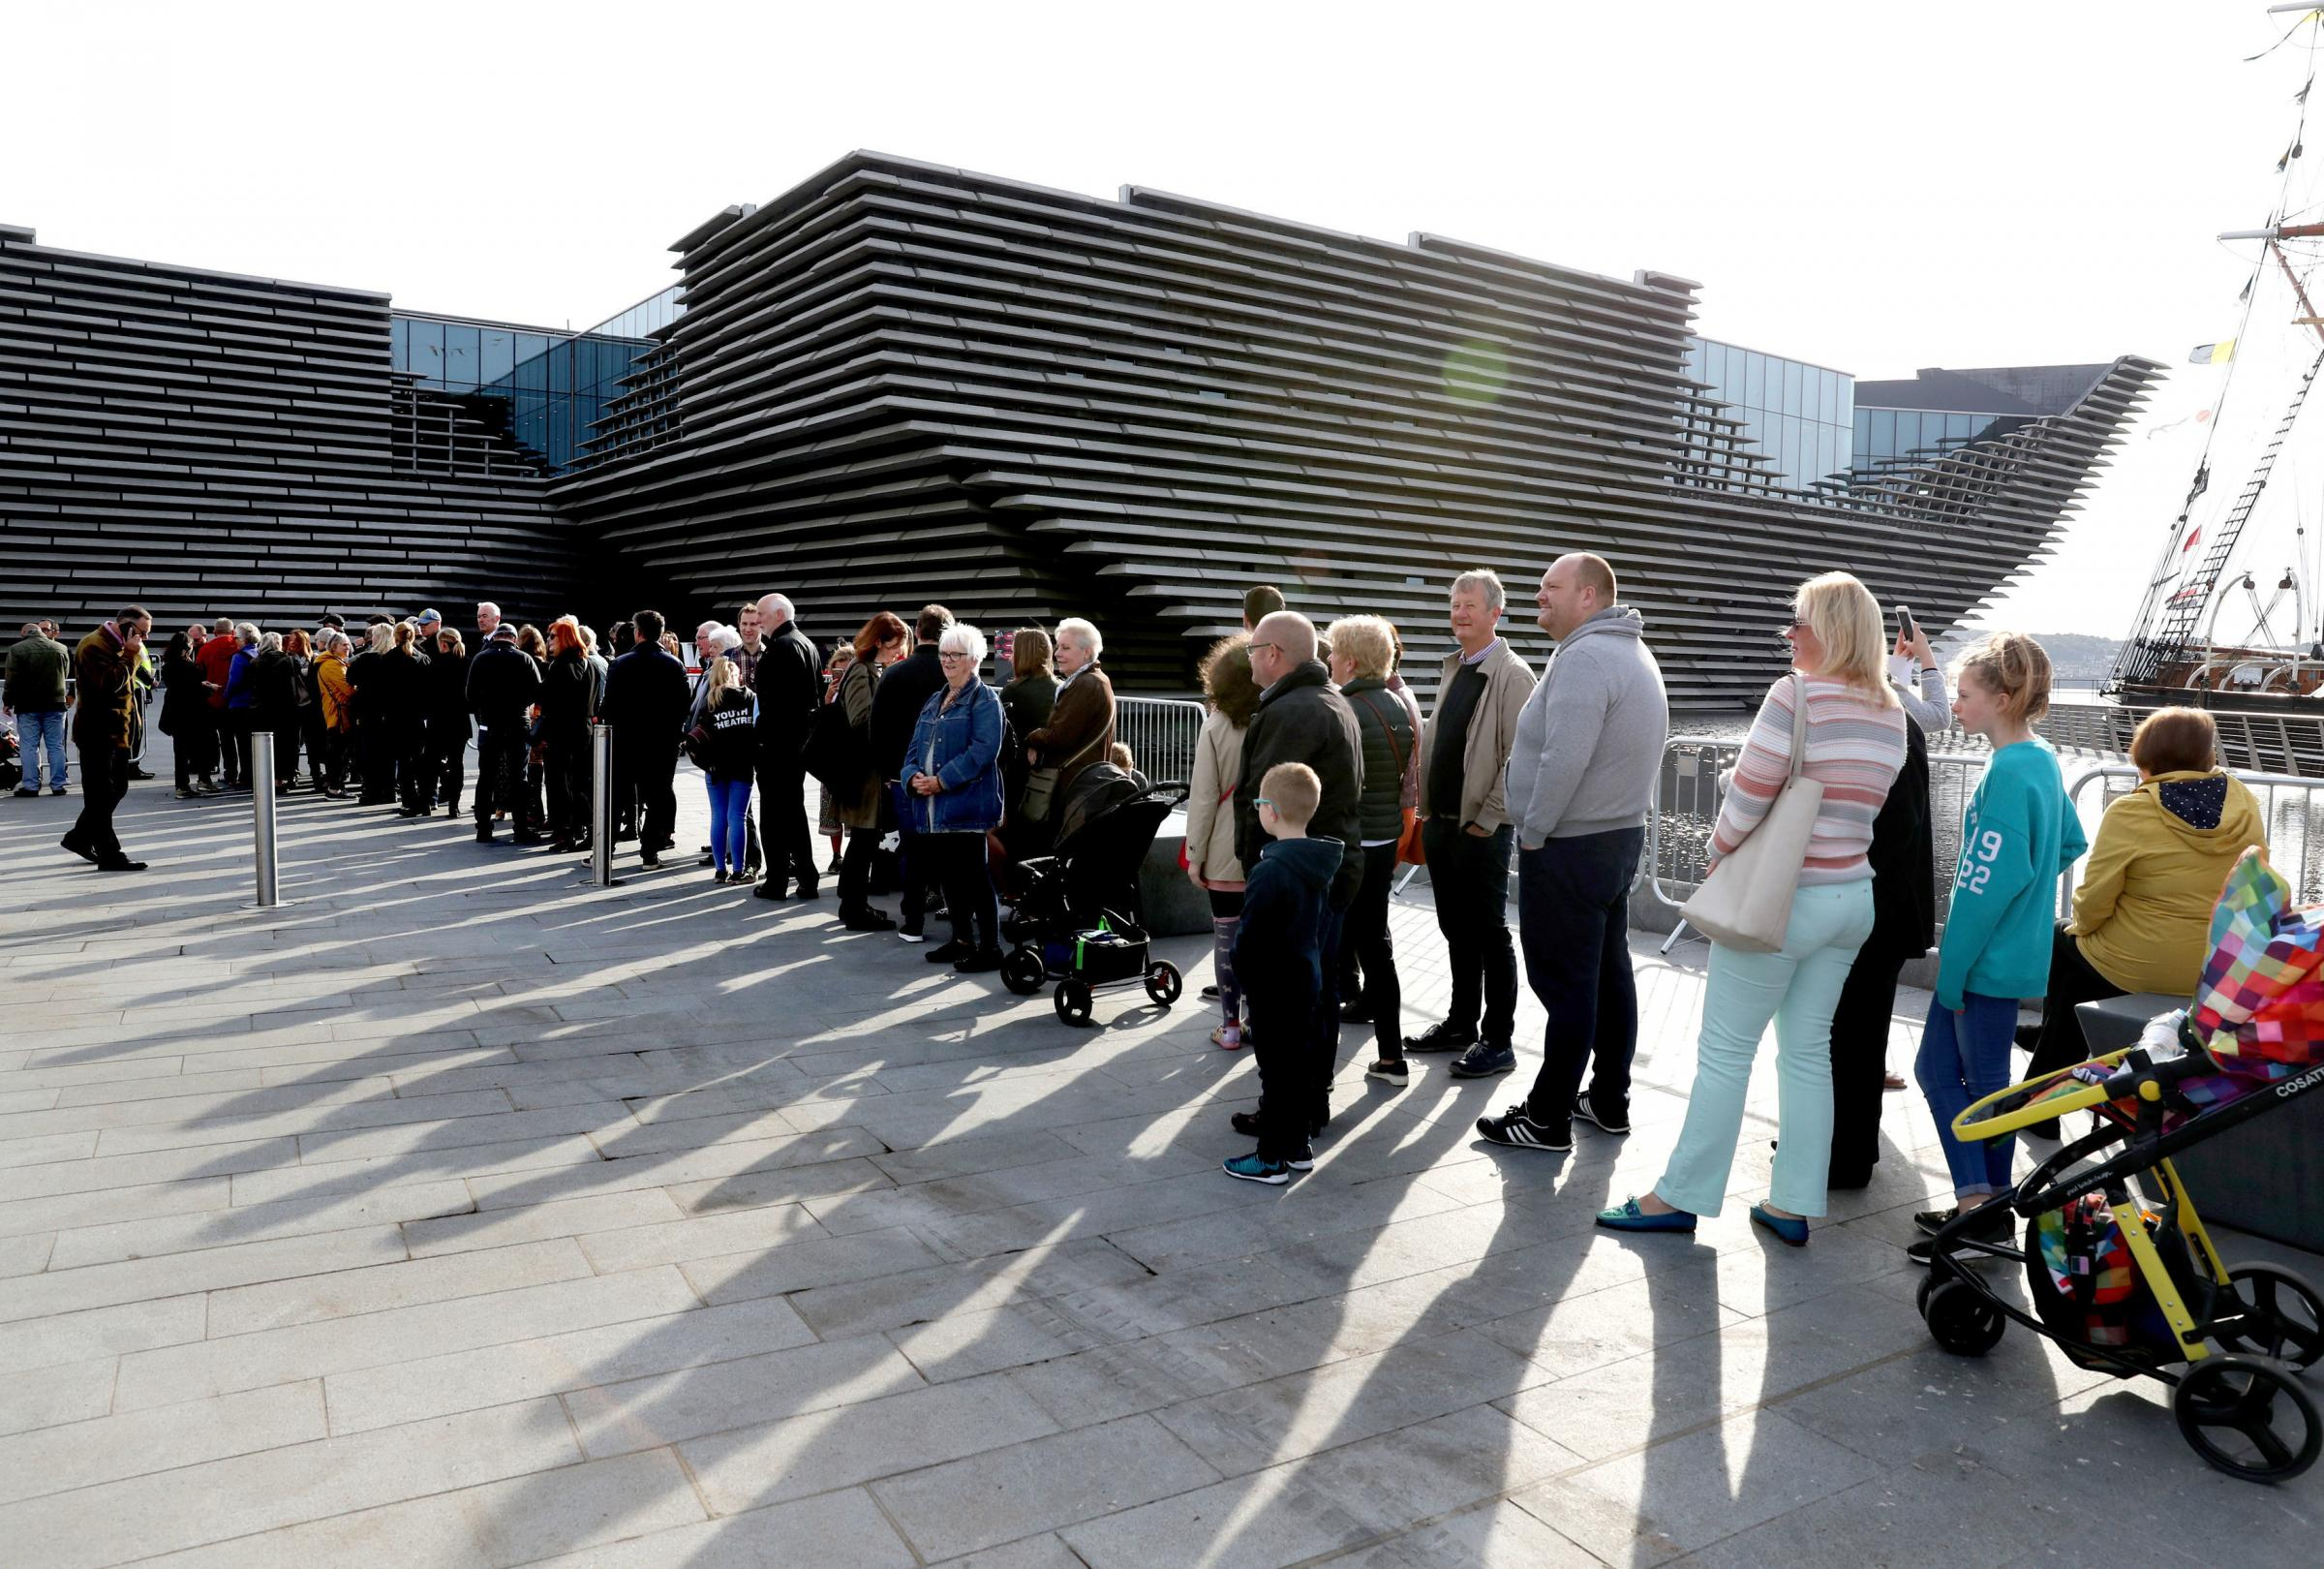 People queueing outside the new V&A Dundee, the £80.1 million new museum